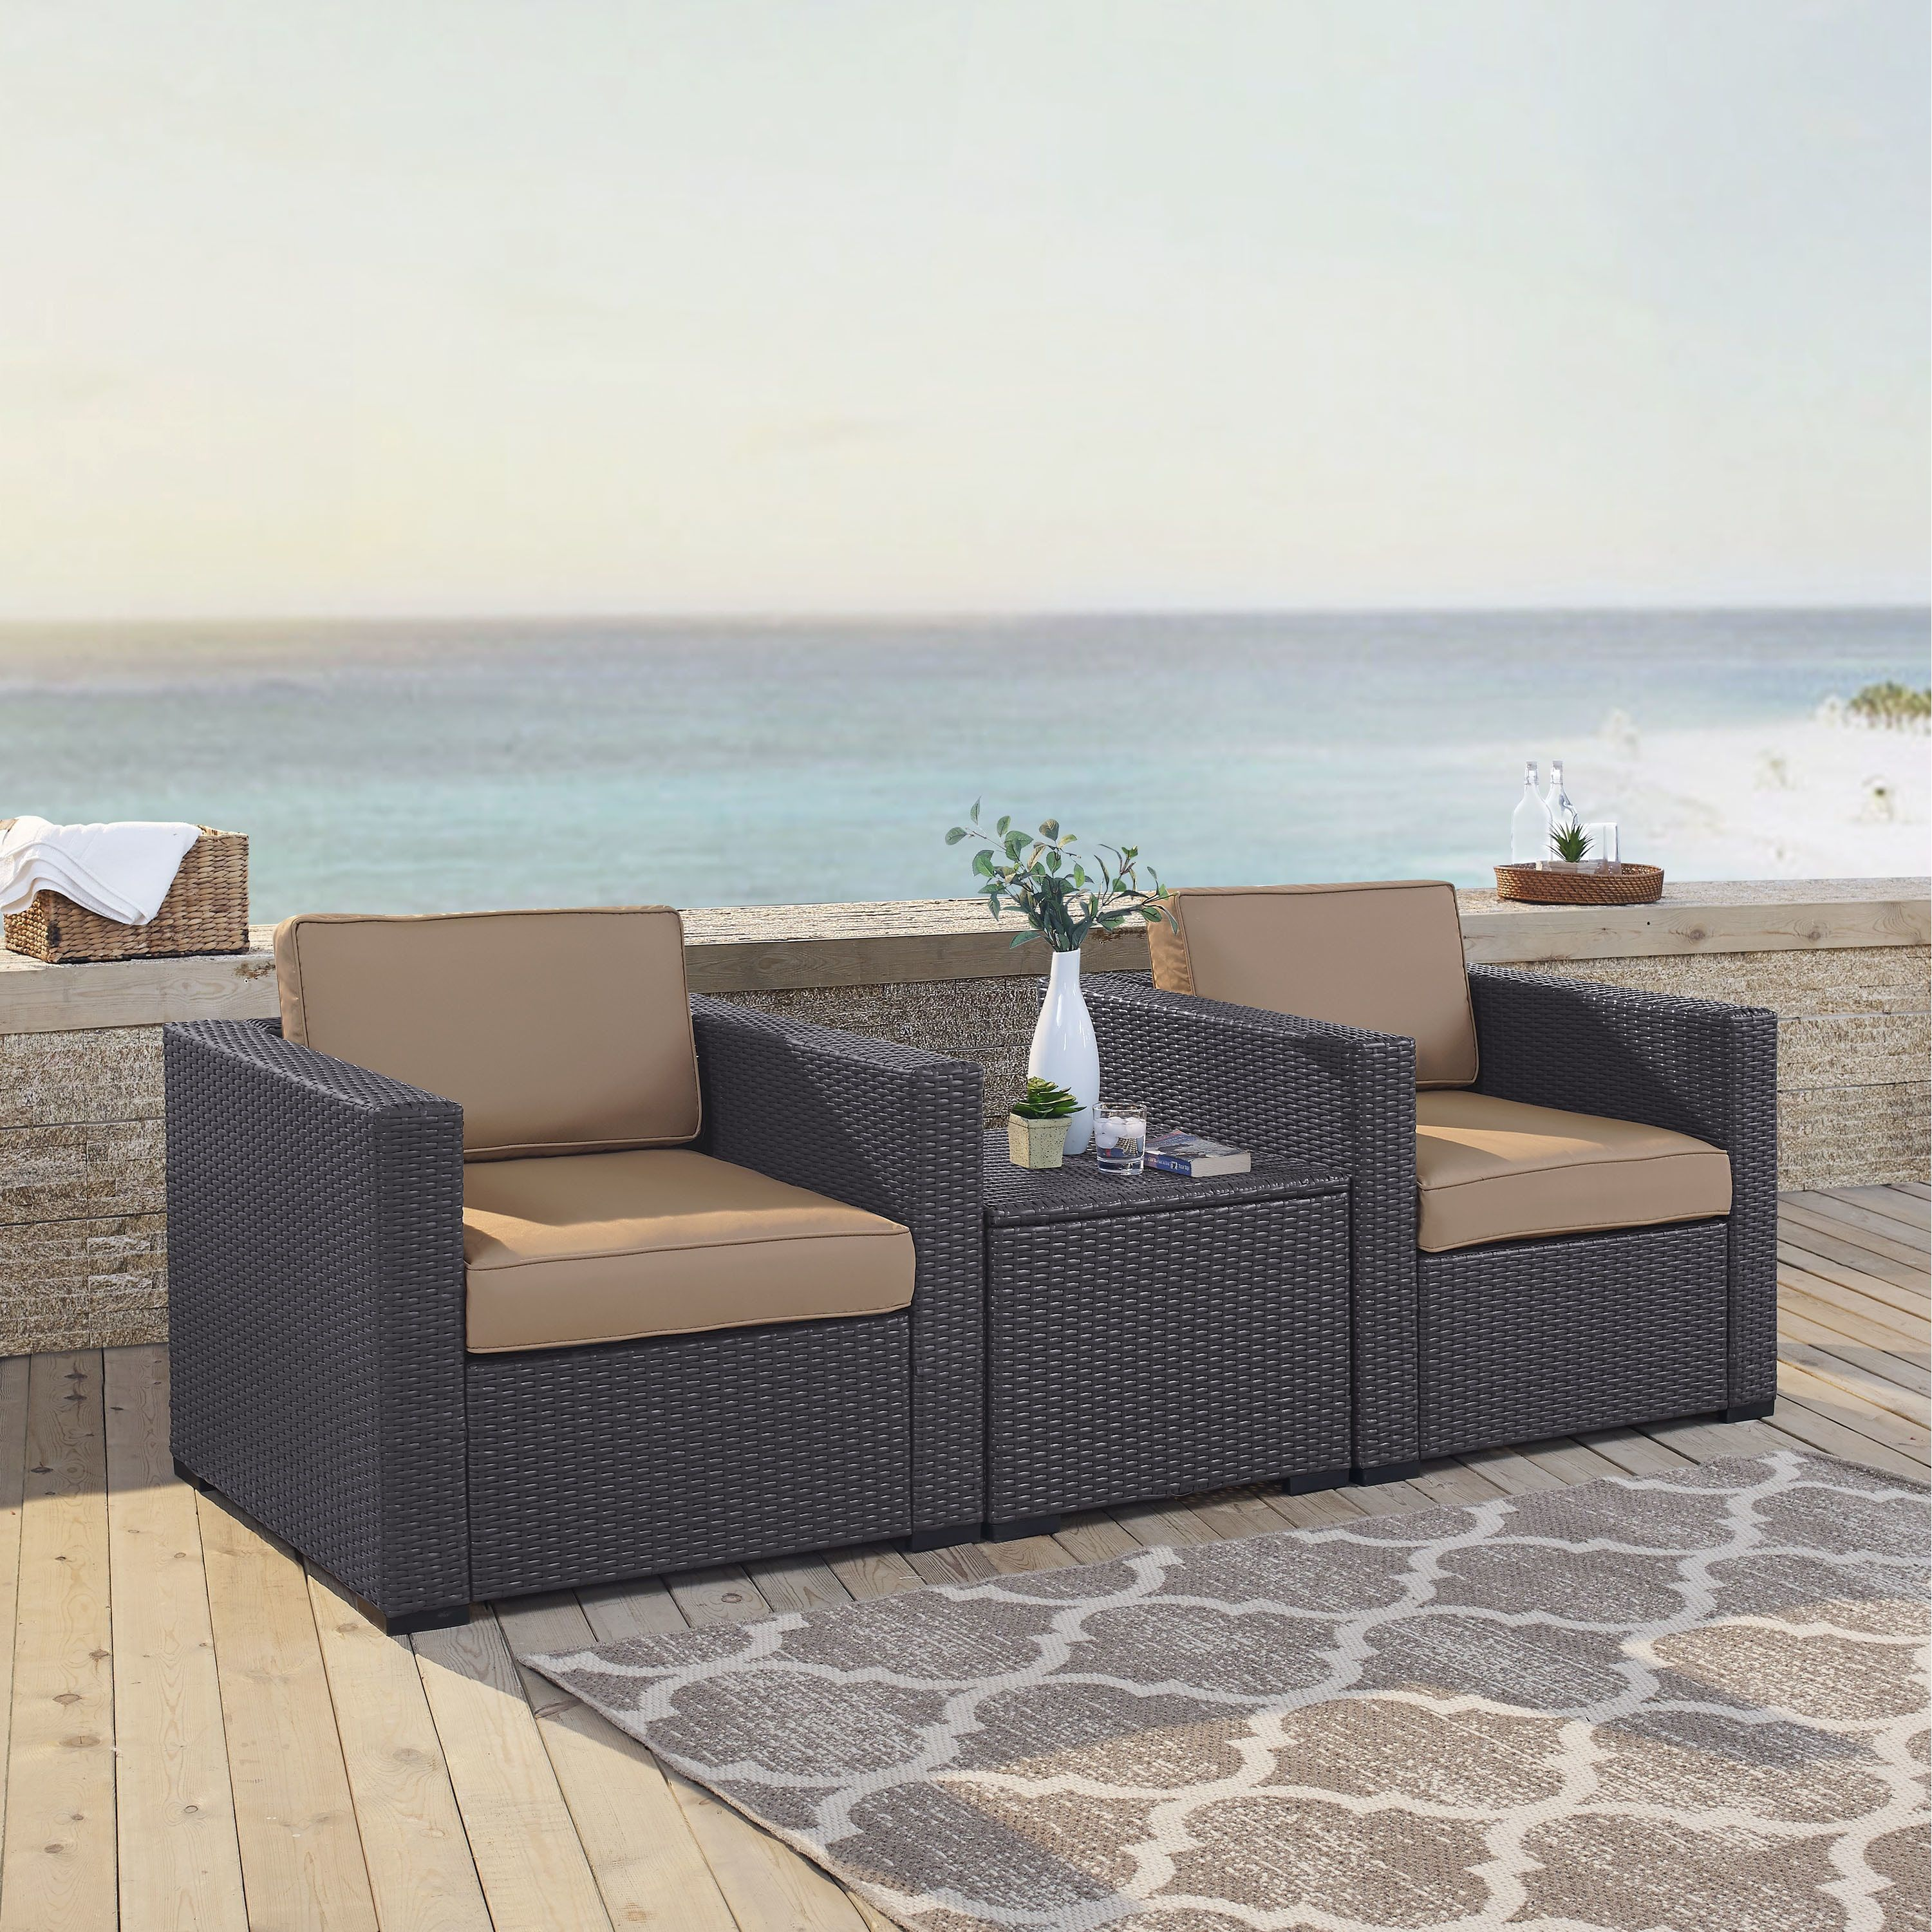 Crosley Furniture Biscayne Mocha Wicker Steel 3 Piece Seating Set With 2 Outdoor Chairs And Coffee Table Two Brown